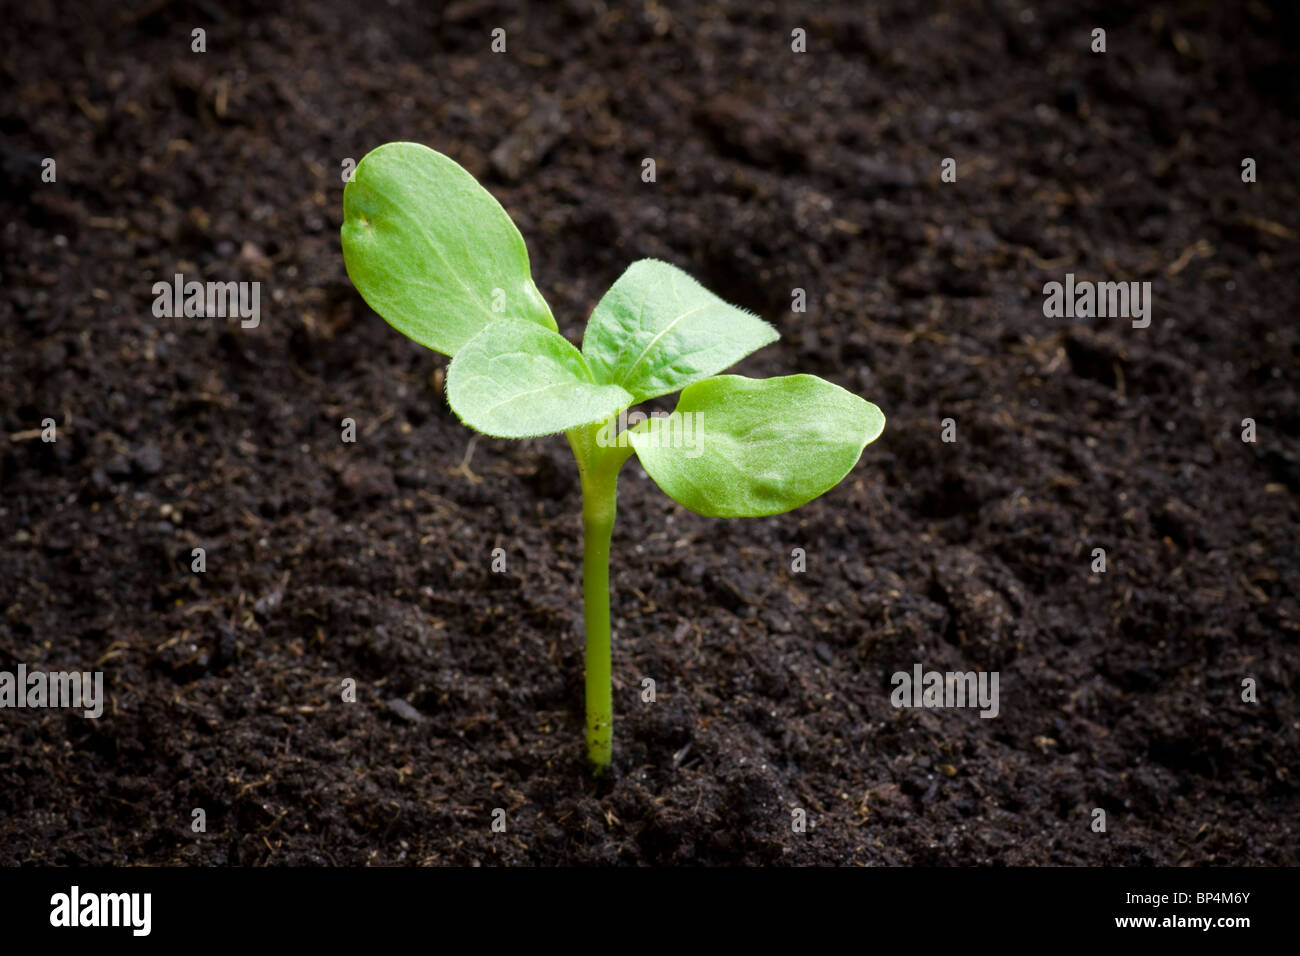 Seedling emerging from soil. Shallow depth of field with space for copy. - Stock Image